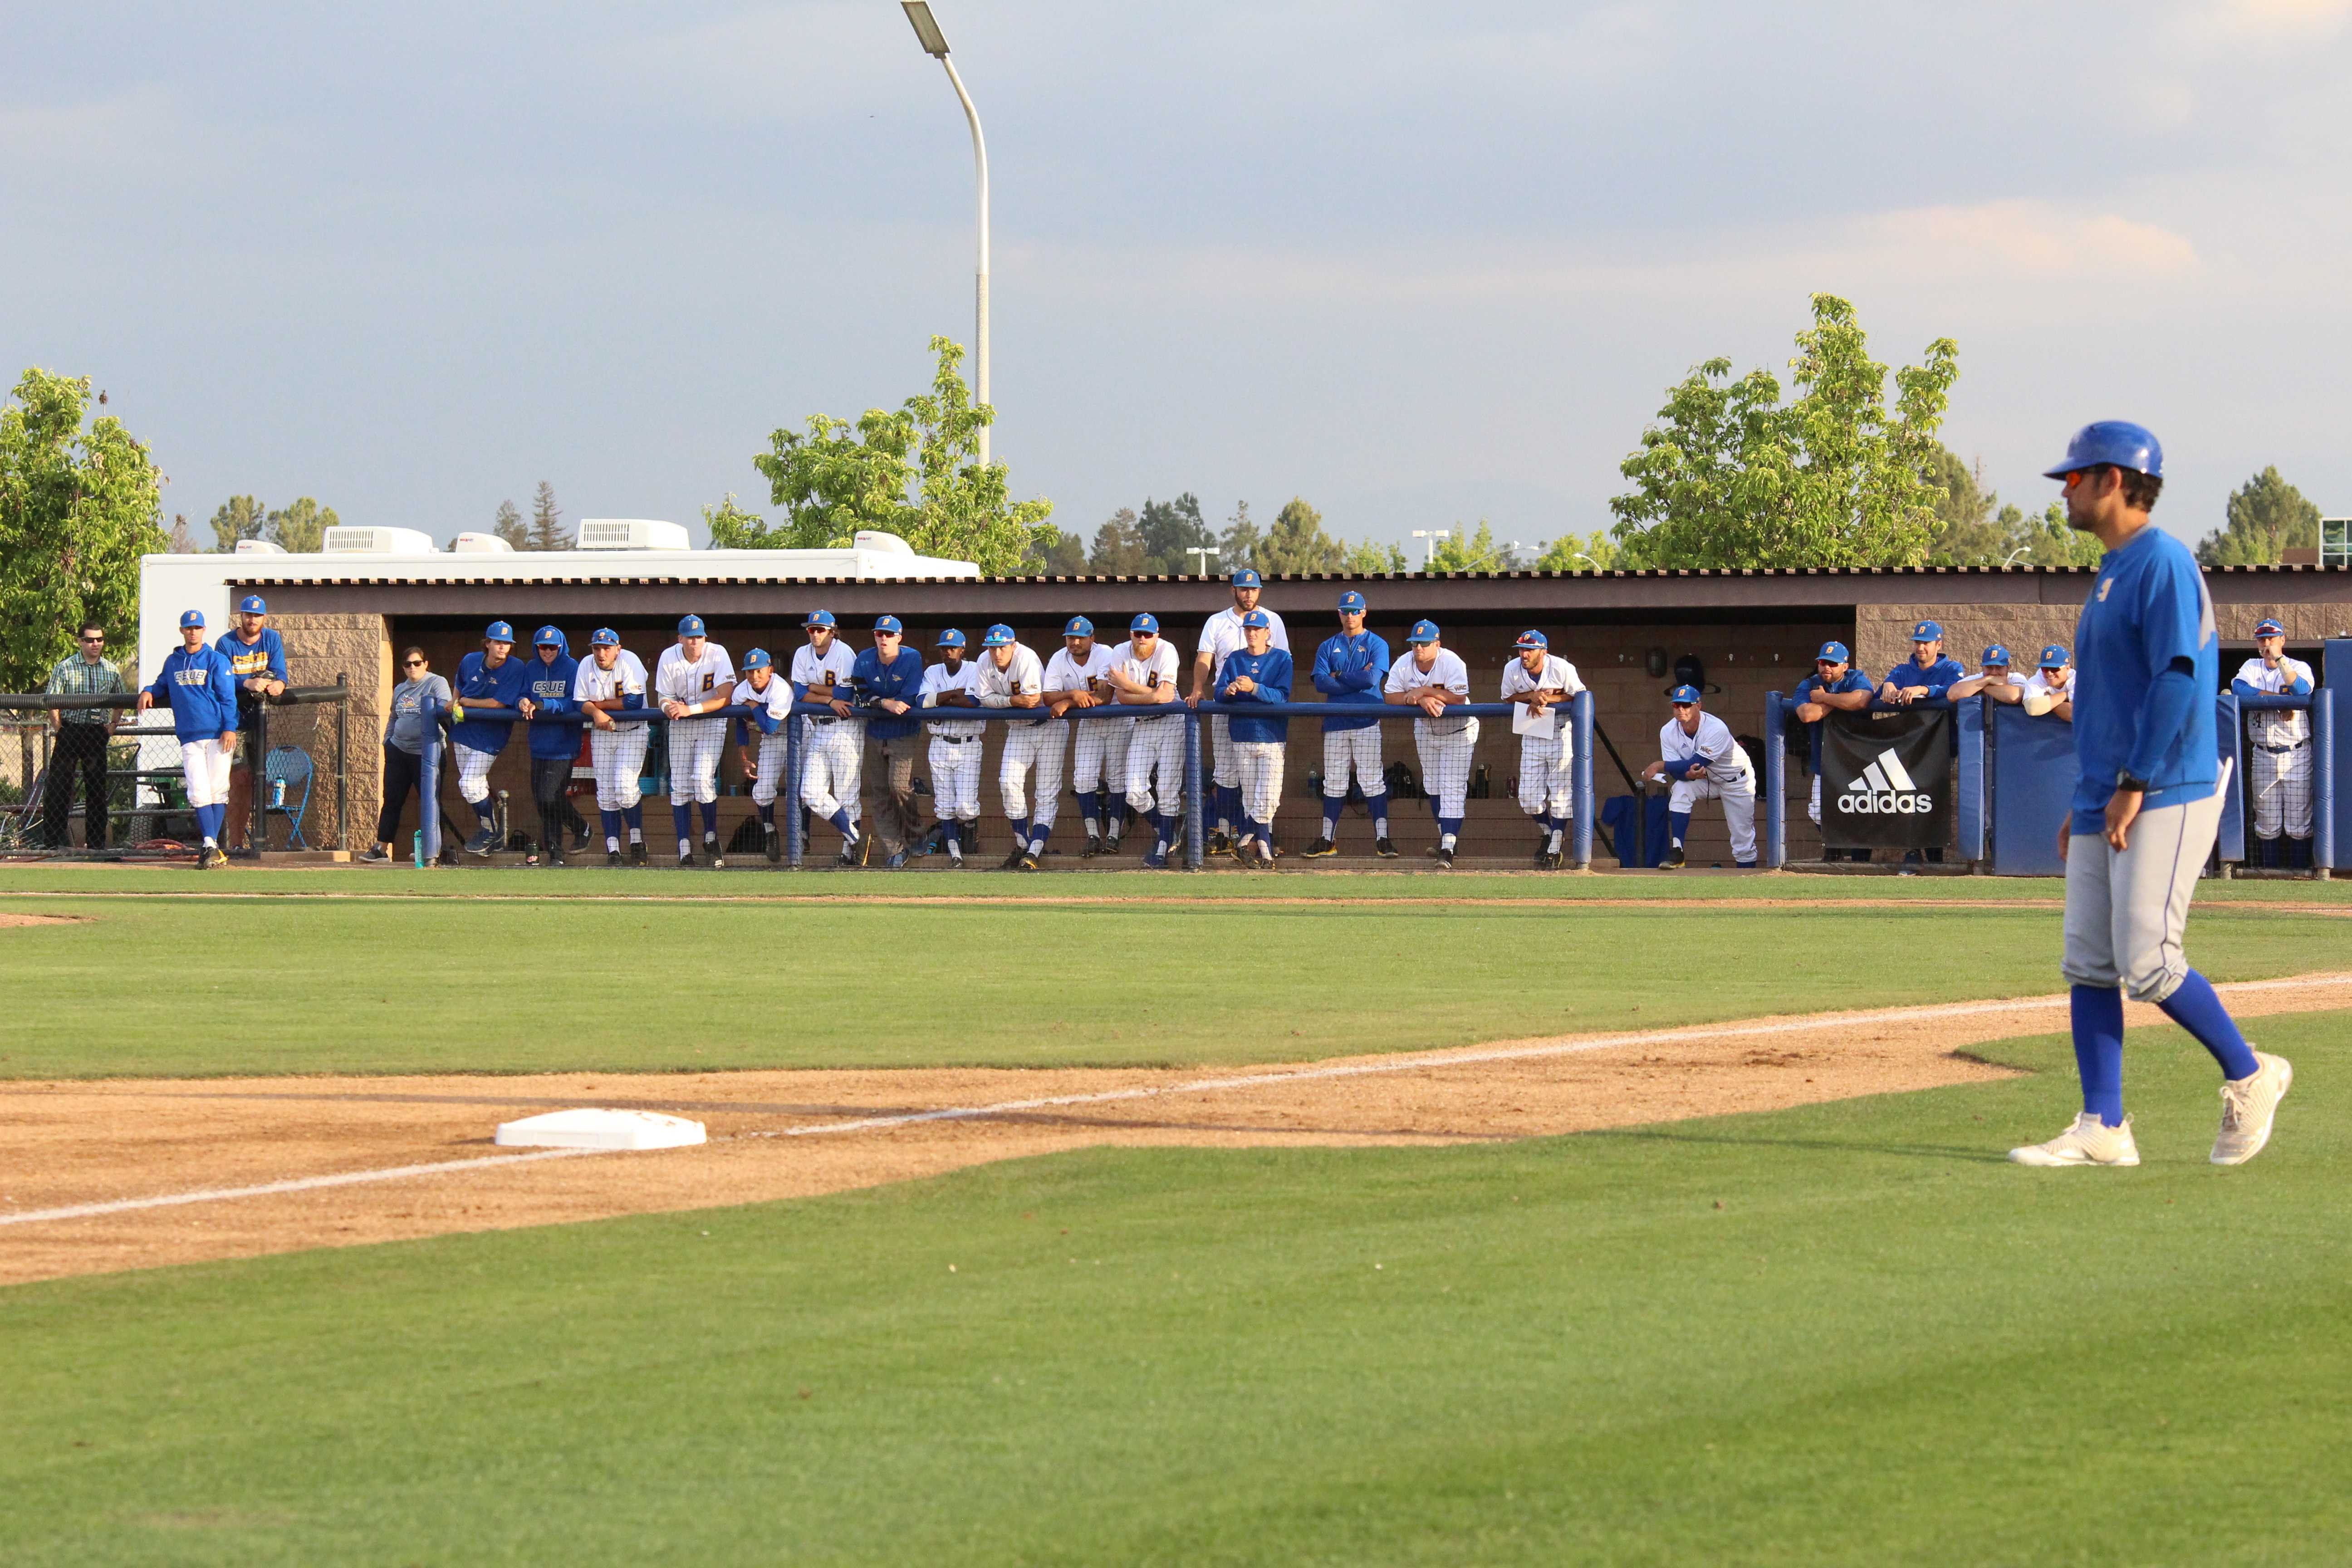 The CSUB baseball team looks on during the Tuesday, May 1 game against UC Santa Barbara at Hardt Field.  Photos by Ricky Gonzales/ The Runner